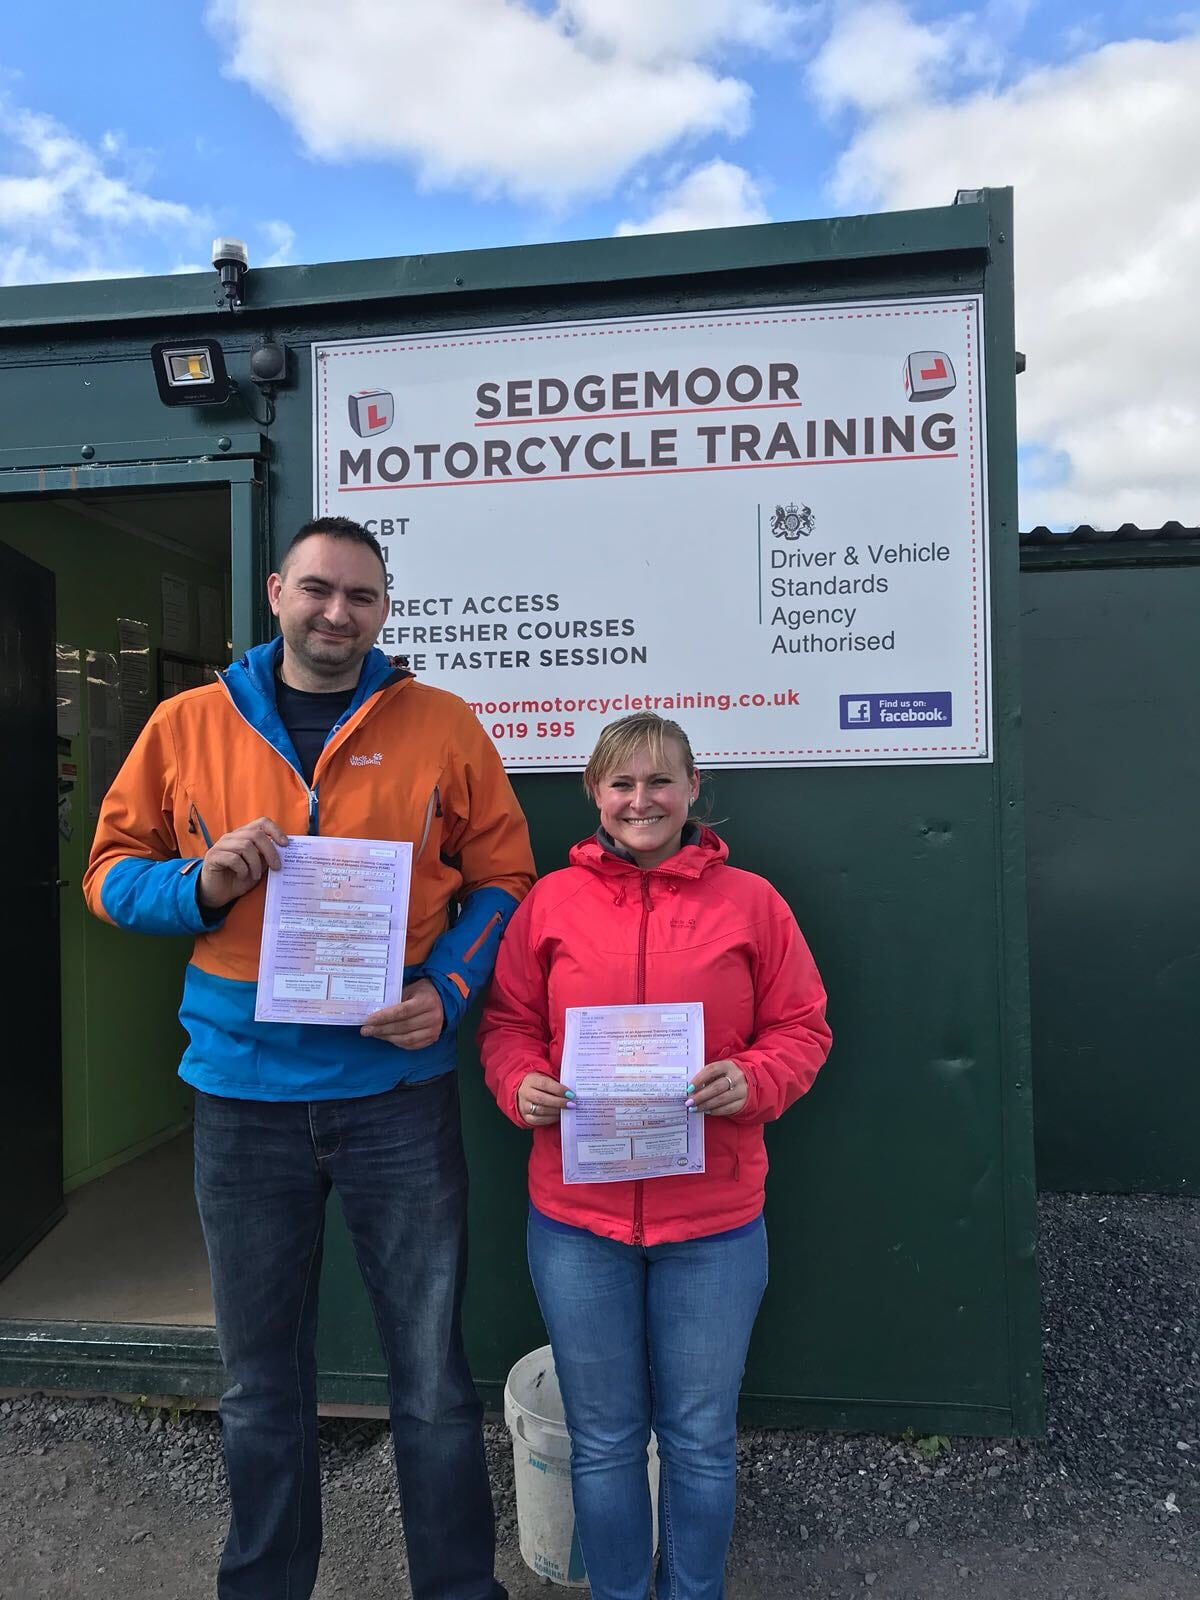 Happy customers at Sedgemoor Motorcycle Training in Bridgwater, somerset